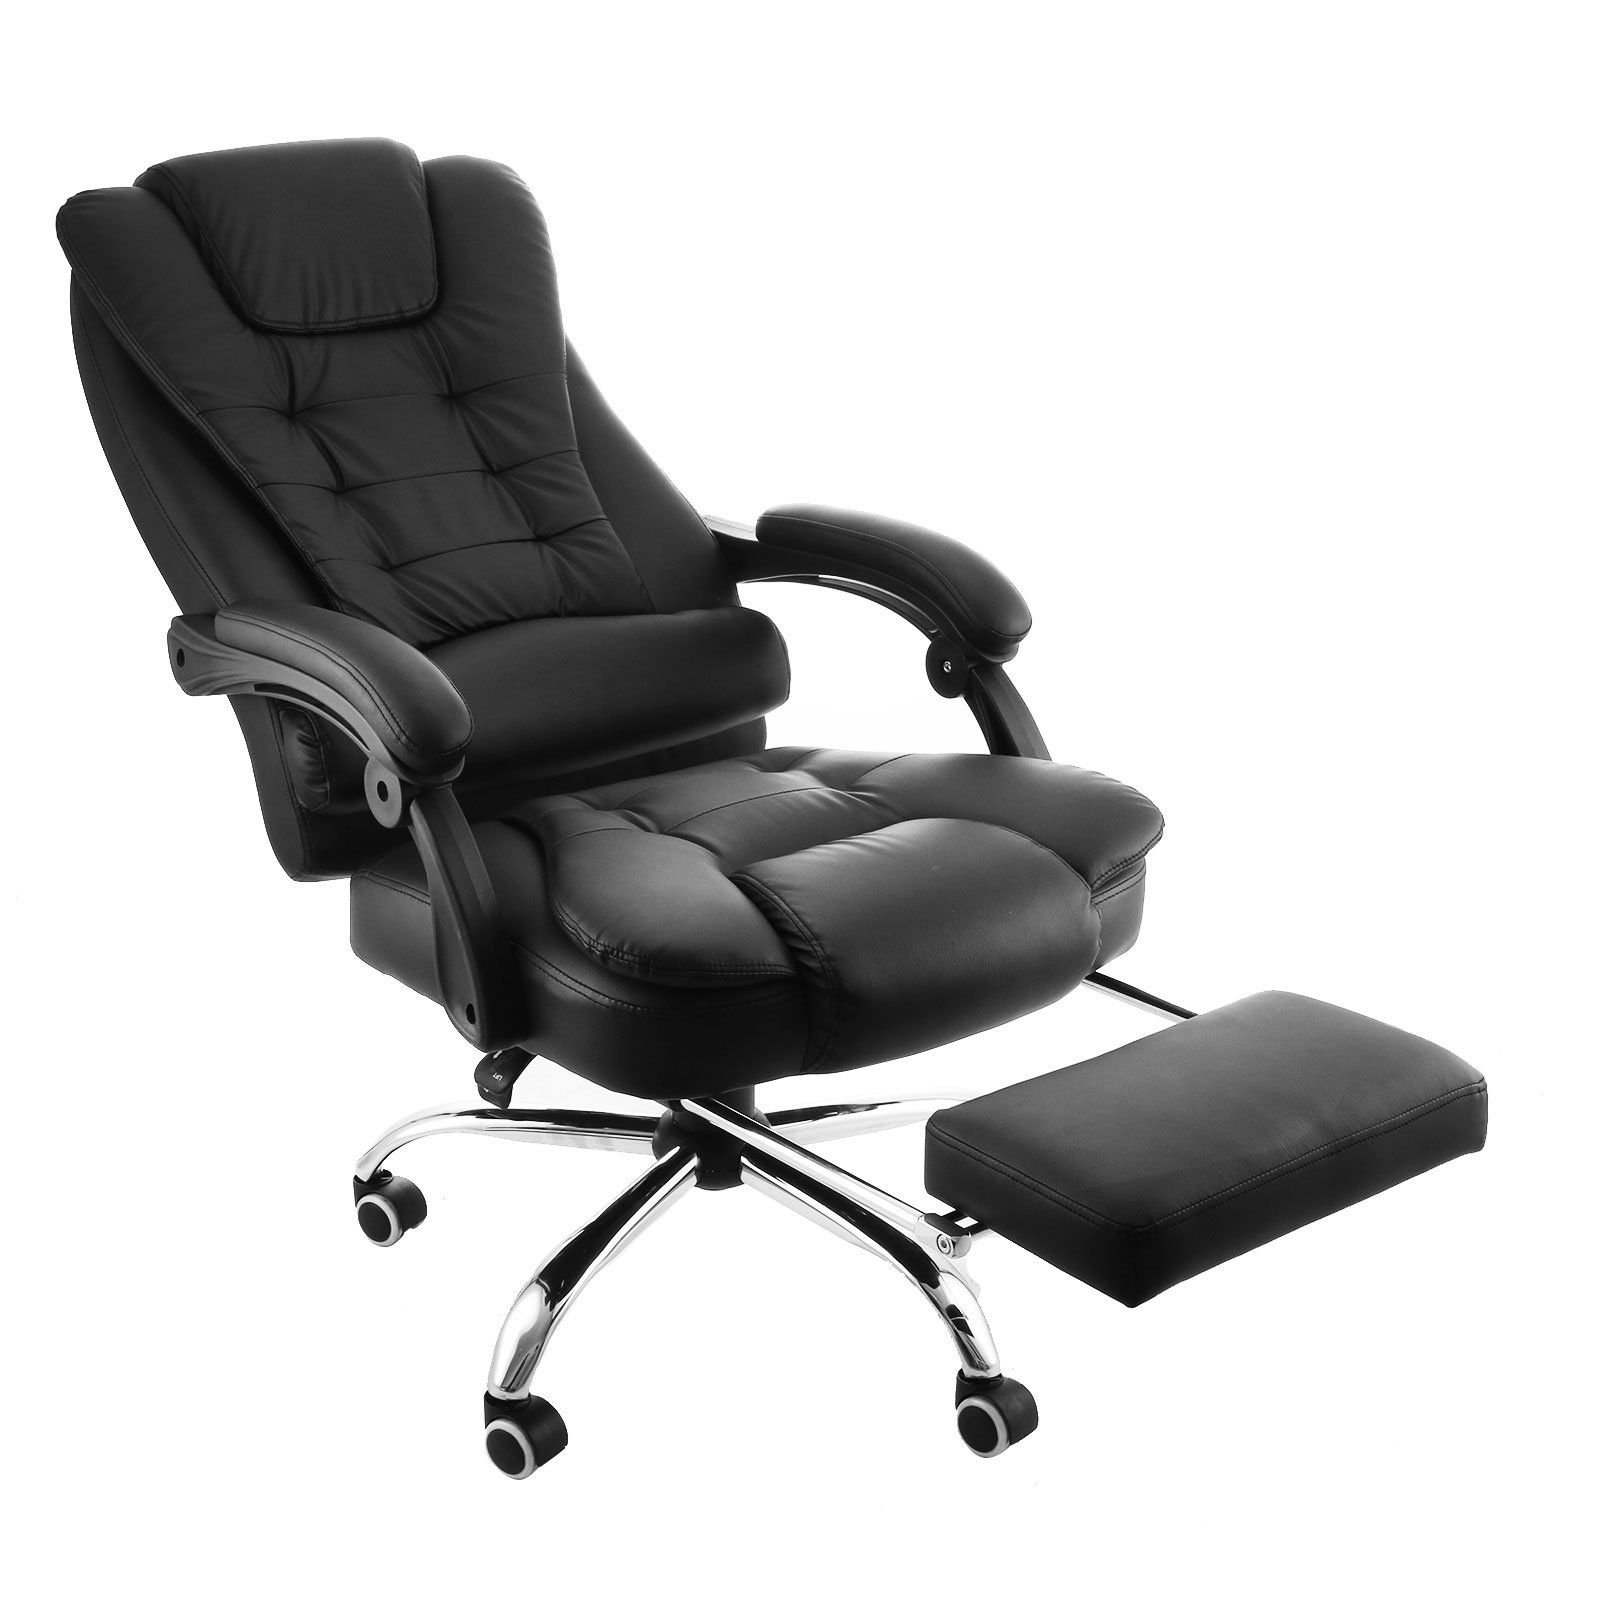 Happybuy Executive Swivel Office Chair With Footrest Pu Leather Ergonomic Office Reclining Chair Adj Reclining Office Chair Office Chair Ergonomic Office Chair